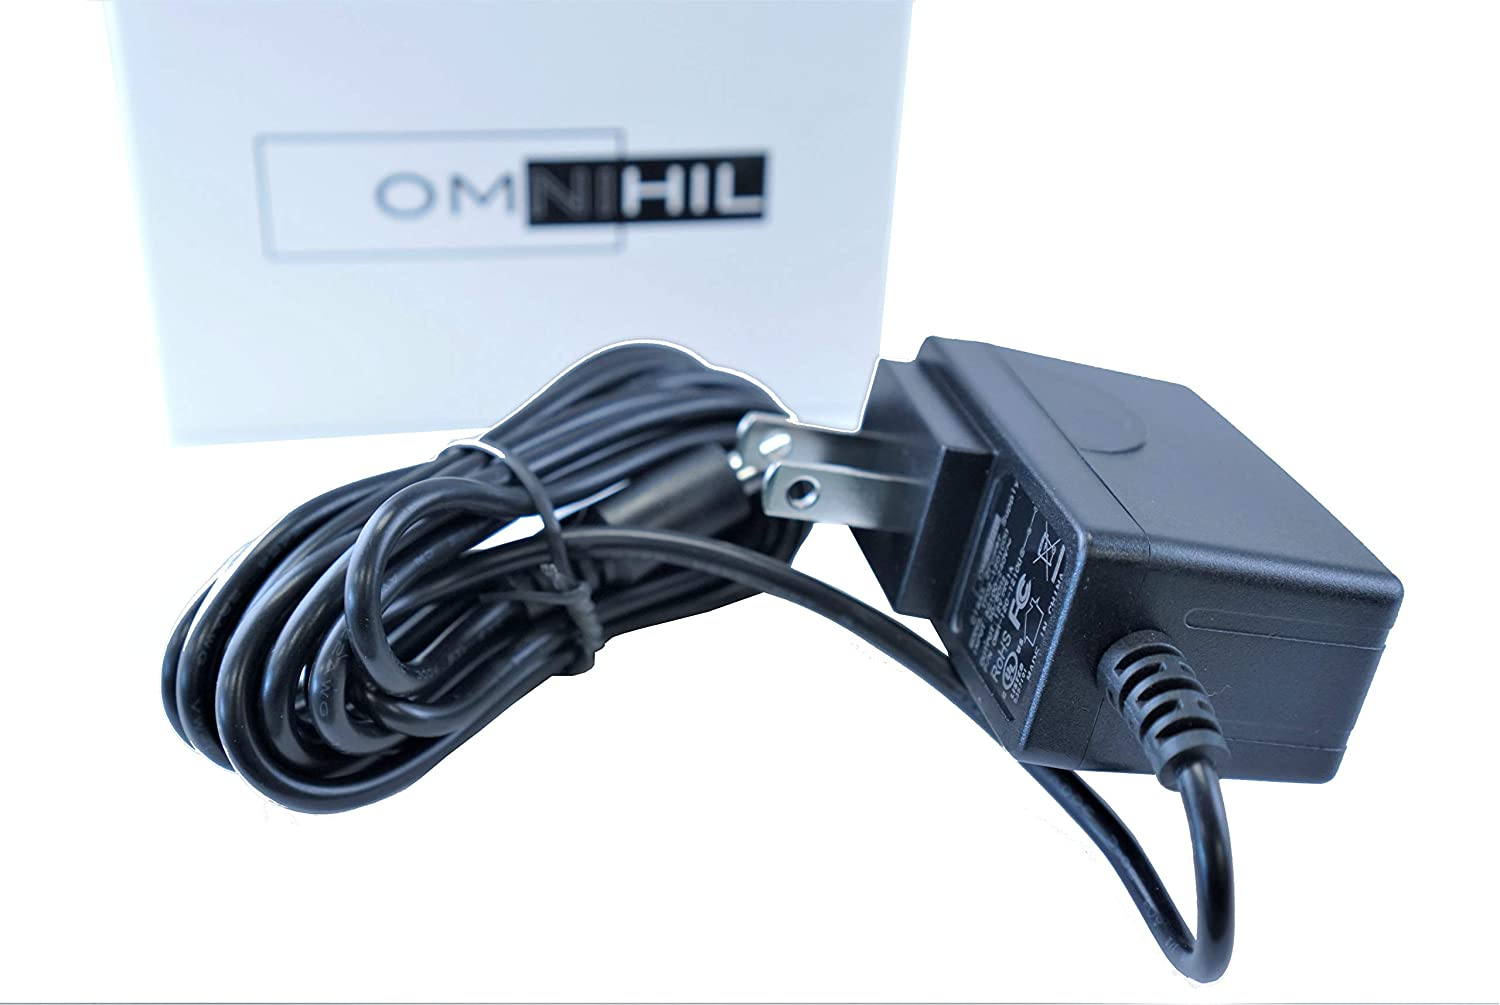 [UL Listed] OMNIHIL 8 Feet Long AC/DC Adapter Compatible with Gold's Gym GG Stride Trainer 380 Elliptical Models: GGEL628081